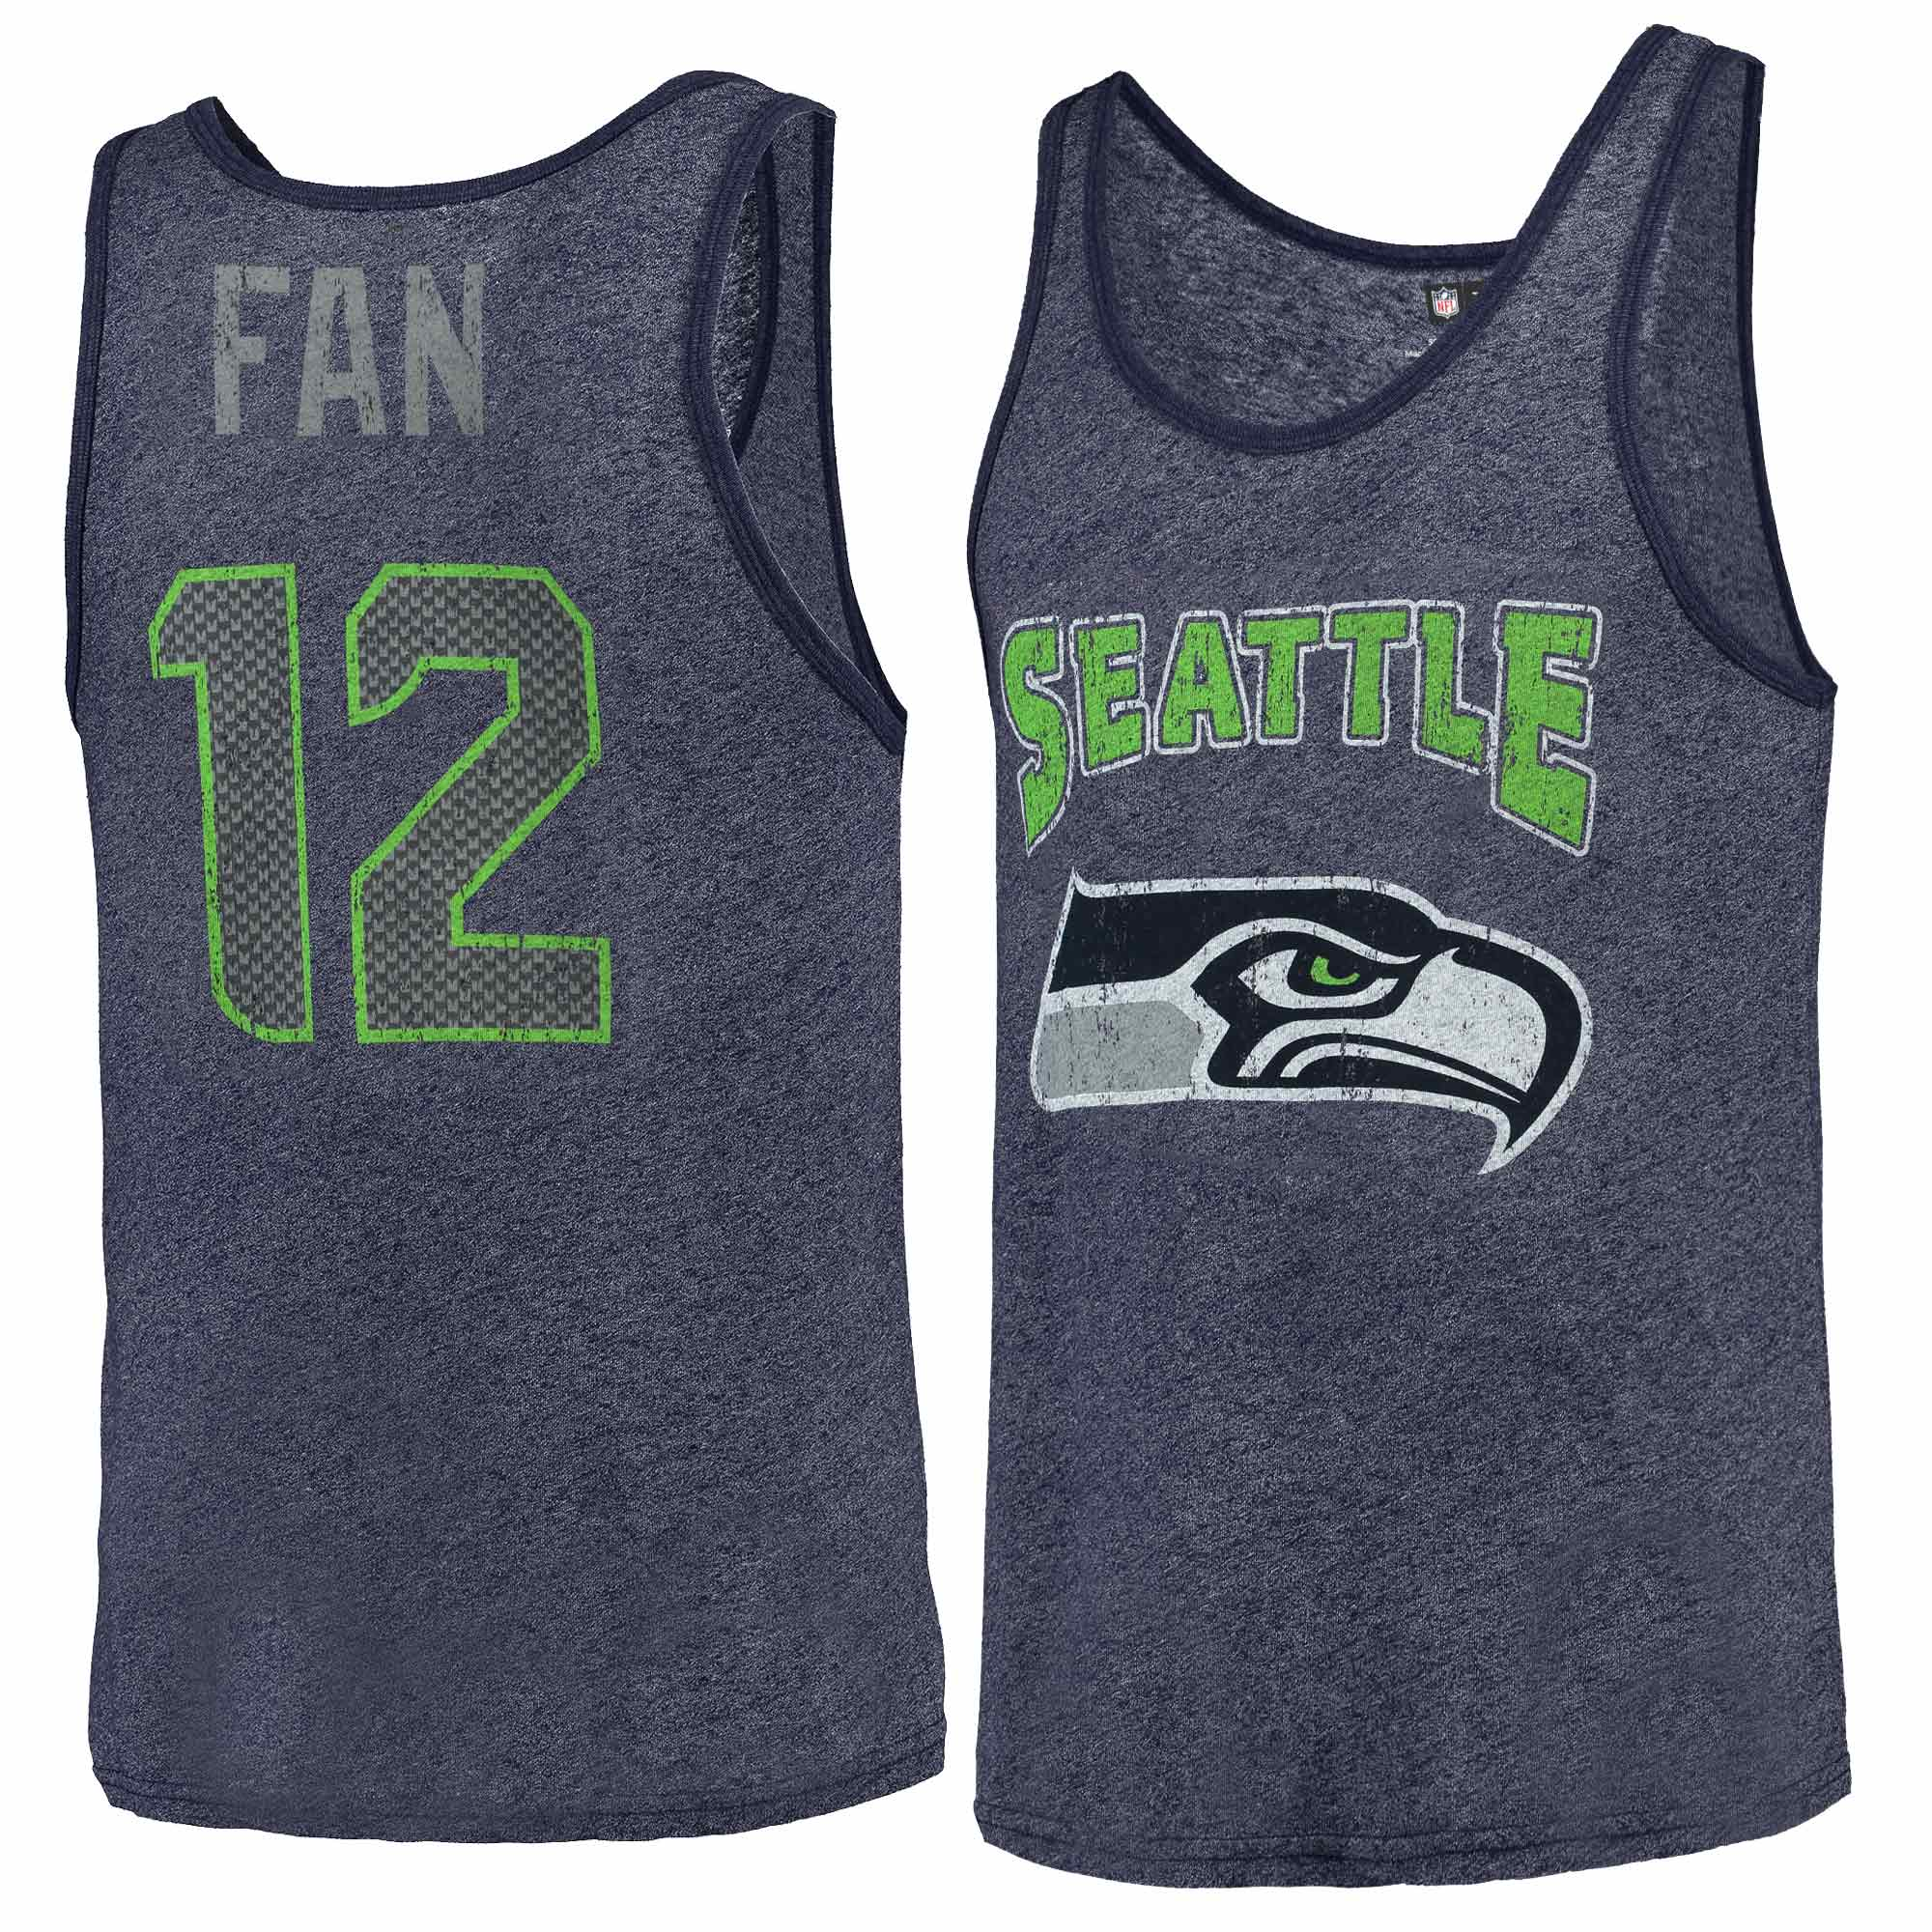 12s Seattle Seahawks Majestic Tri-Blend Wordmark Name & Number Tank Top - College Navy